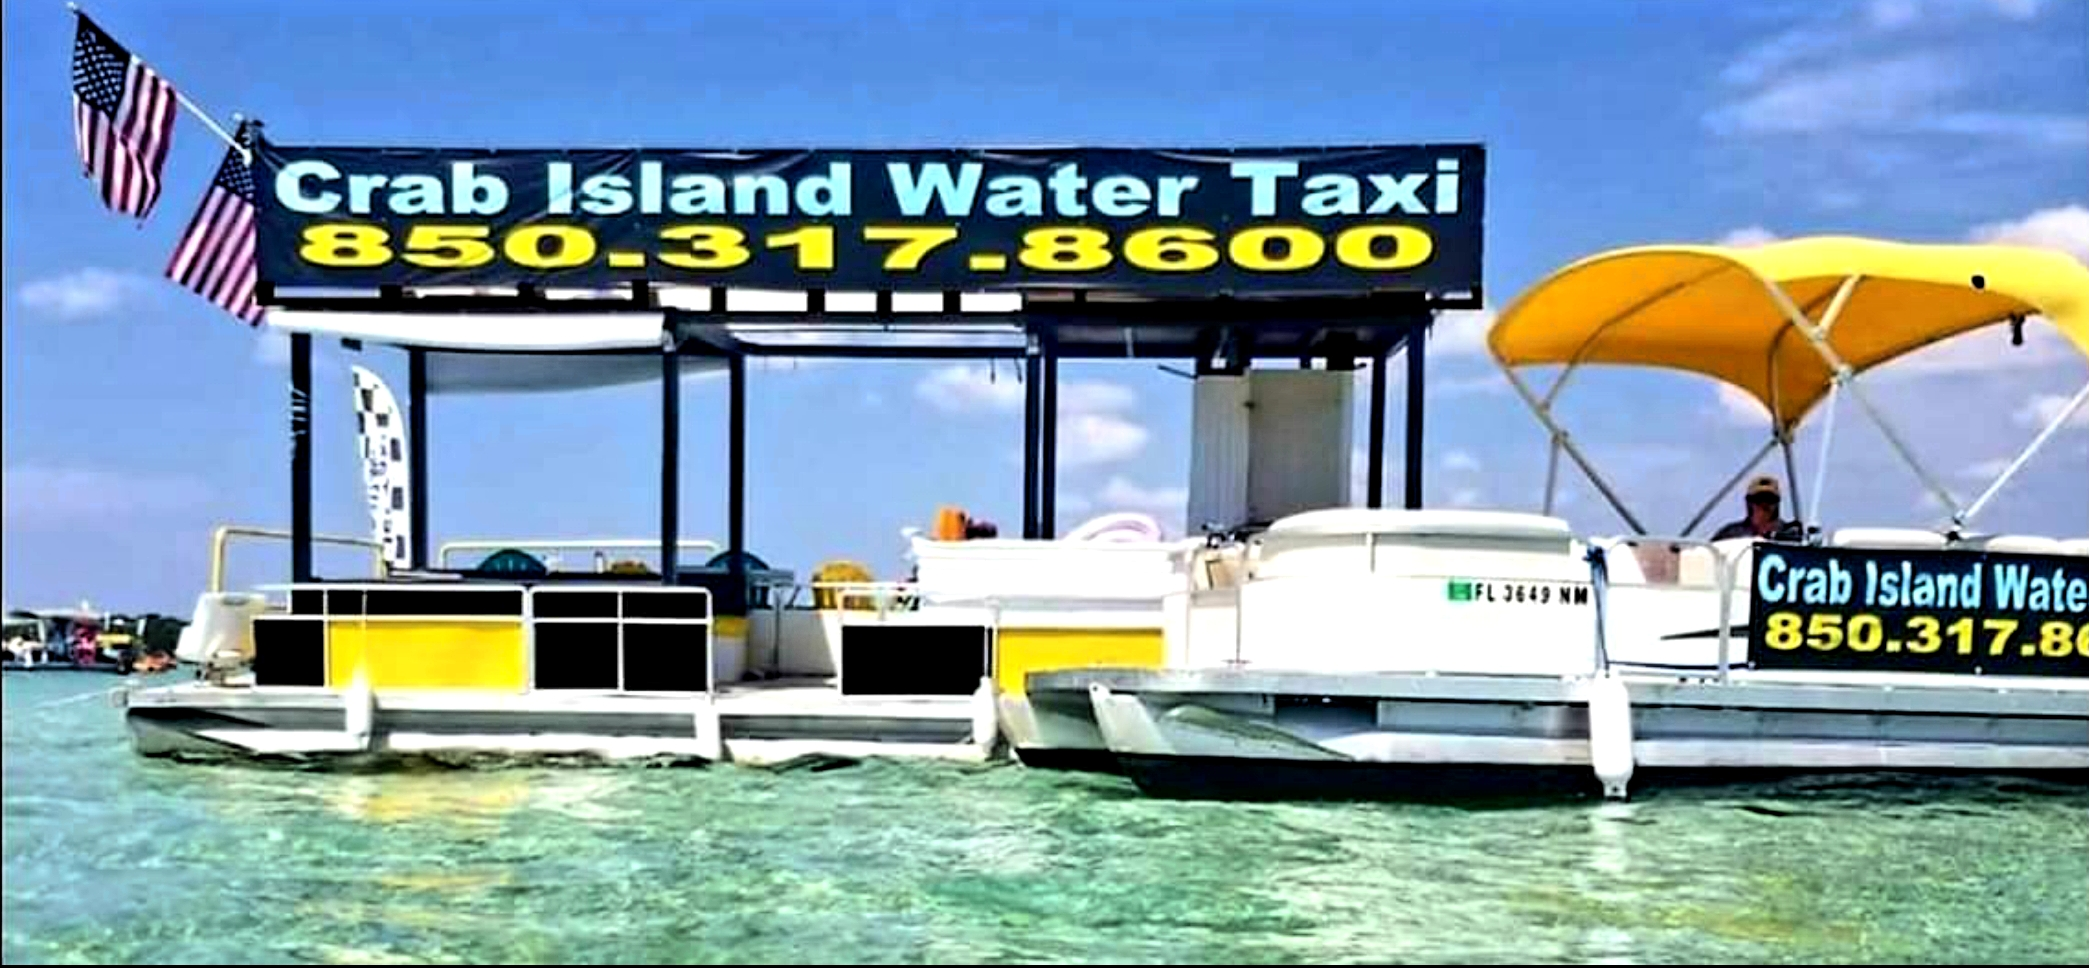 Crab Island Water Taxi image 0